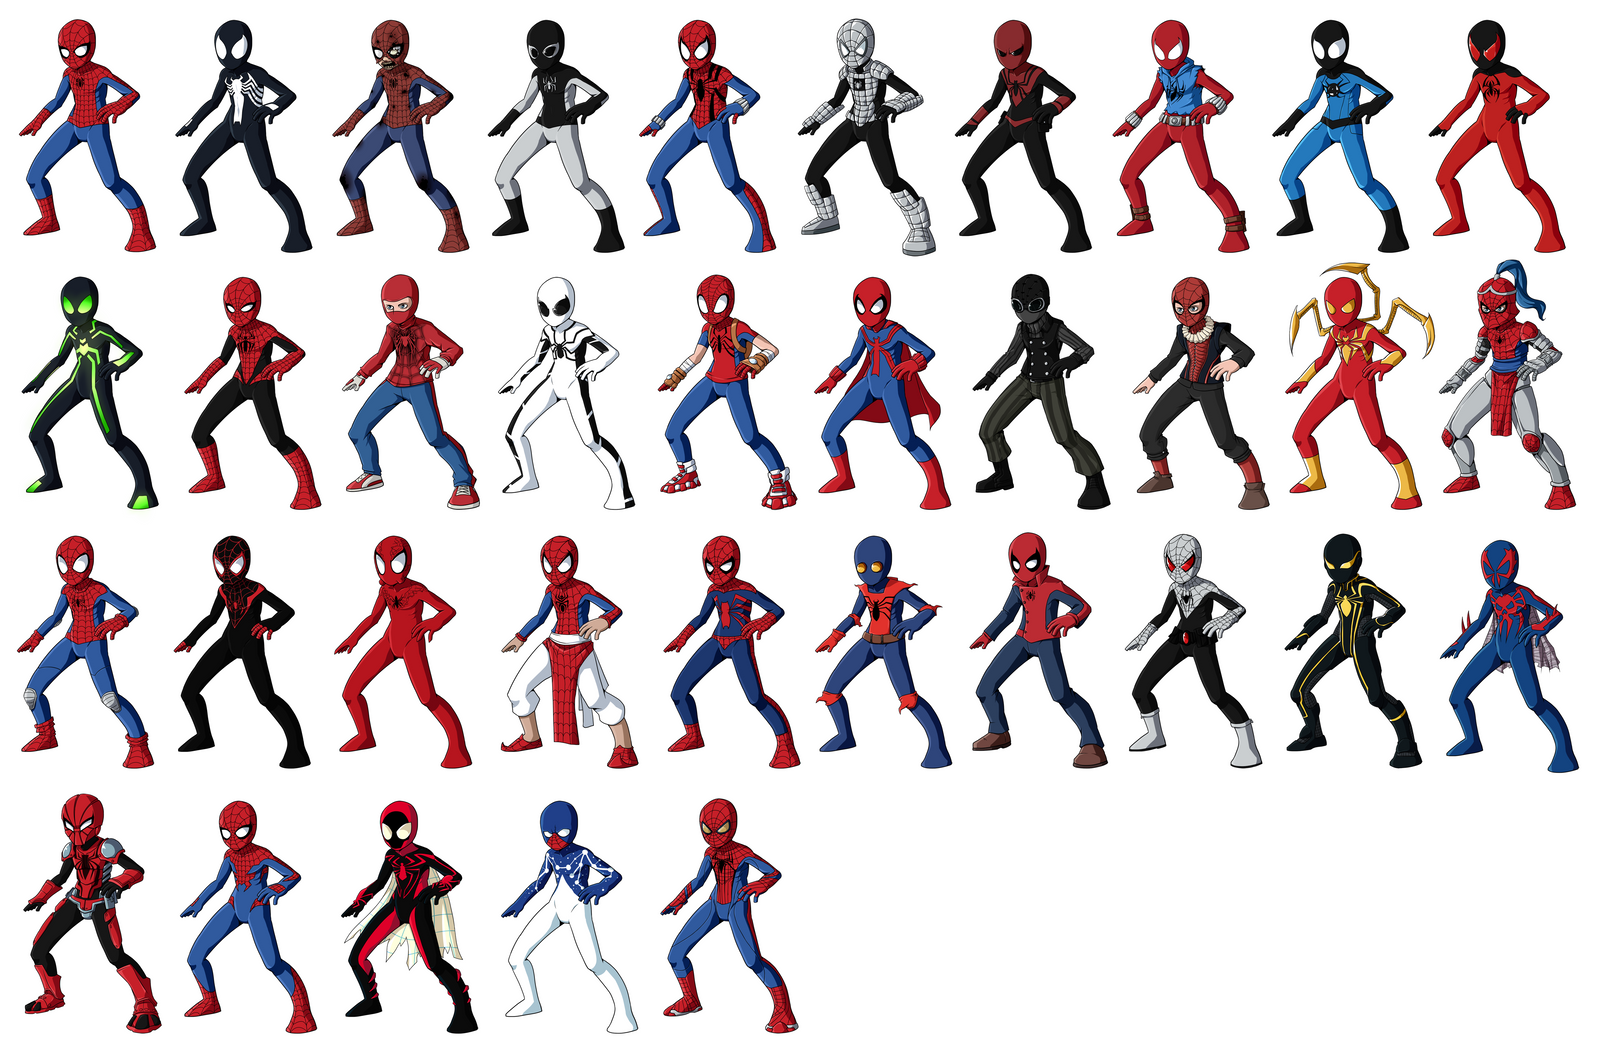 spider man alternate versions by raindante on deviantart